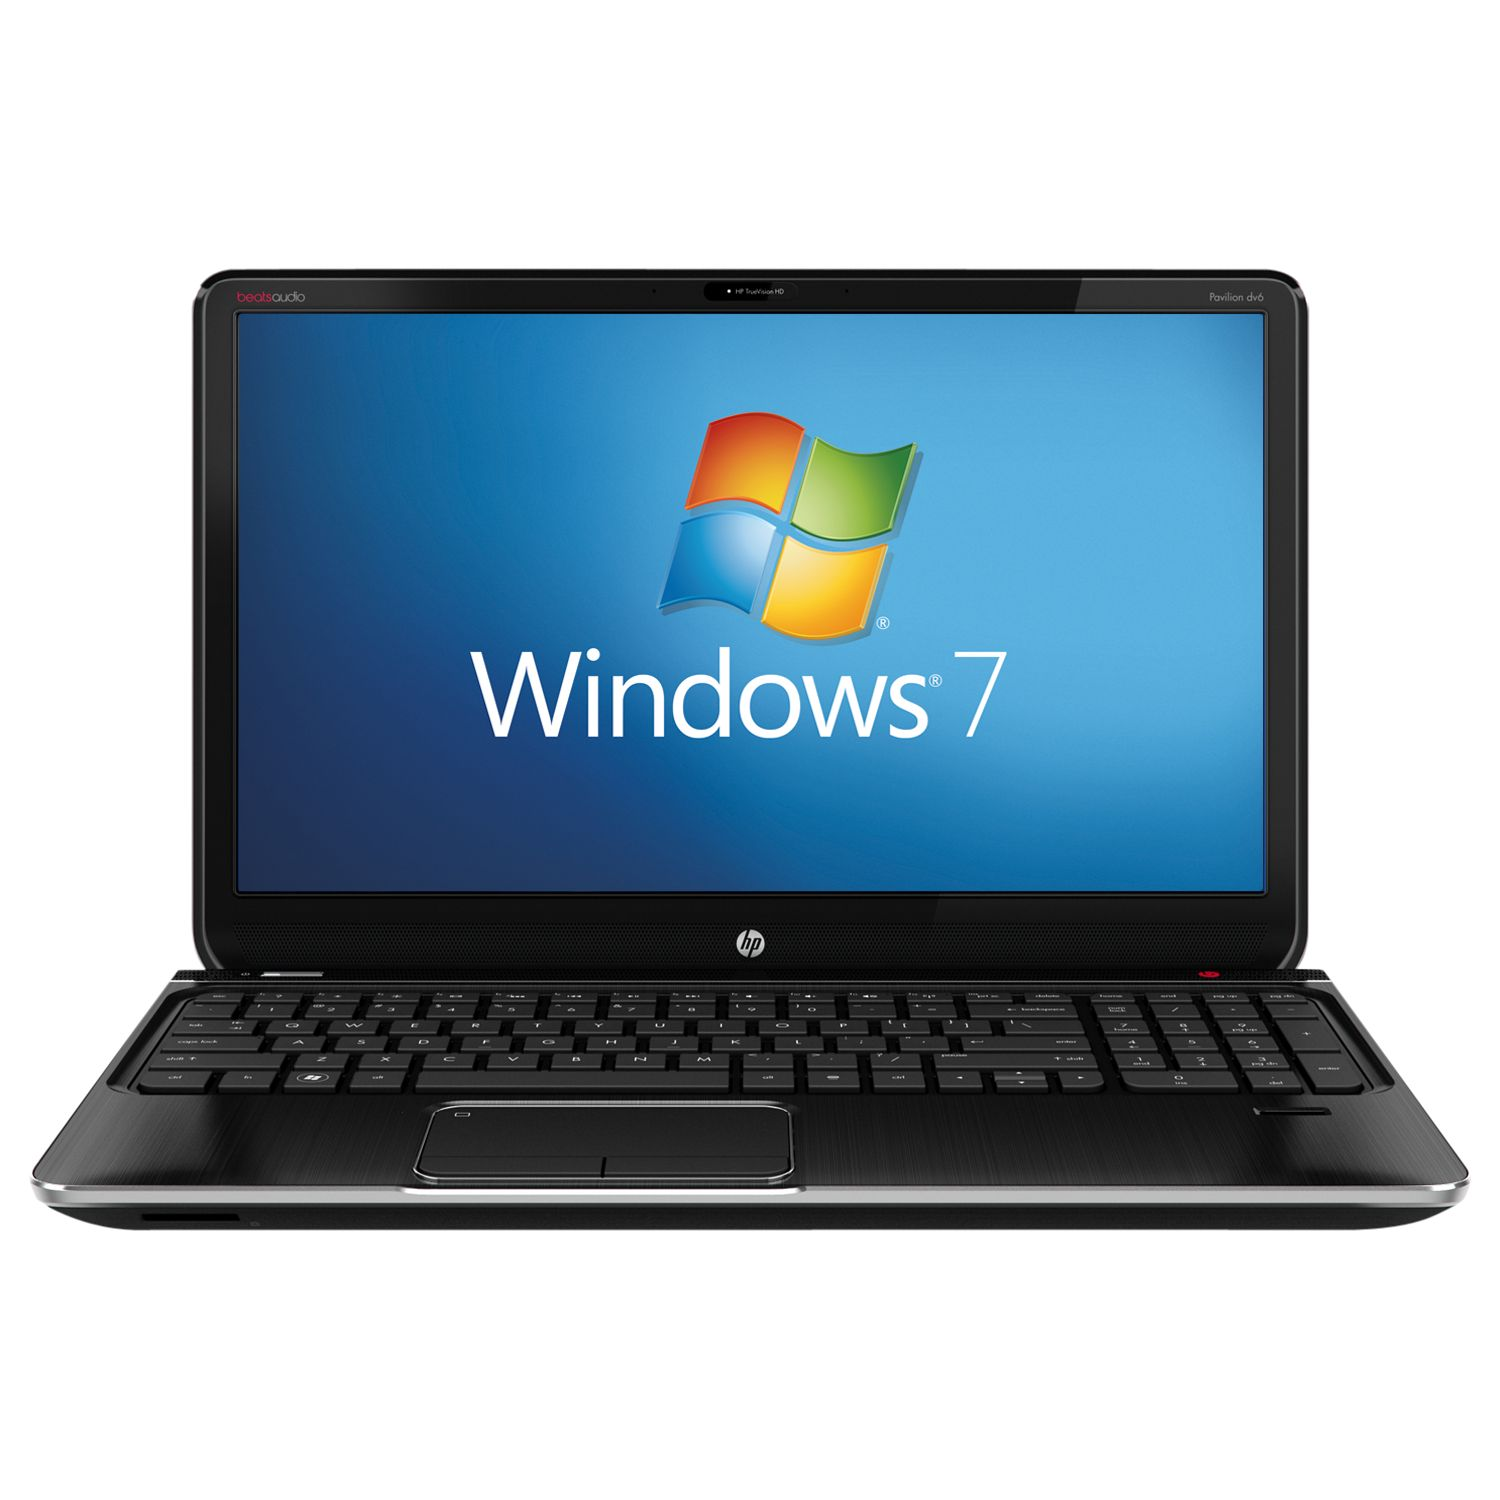 "Hp Pavilion Dv6-7051sa Laptop, Intel Core I3, 2.3ghz, 4gb Ram, 500gb, Beats Audio, 15.6"", Black"